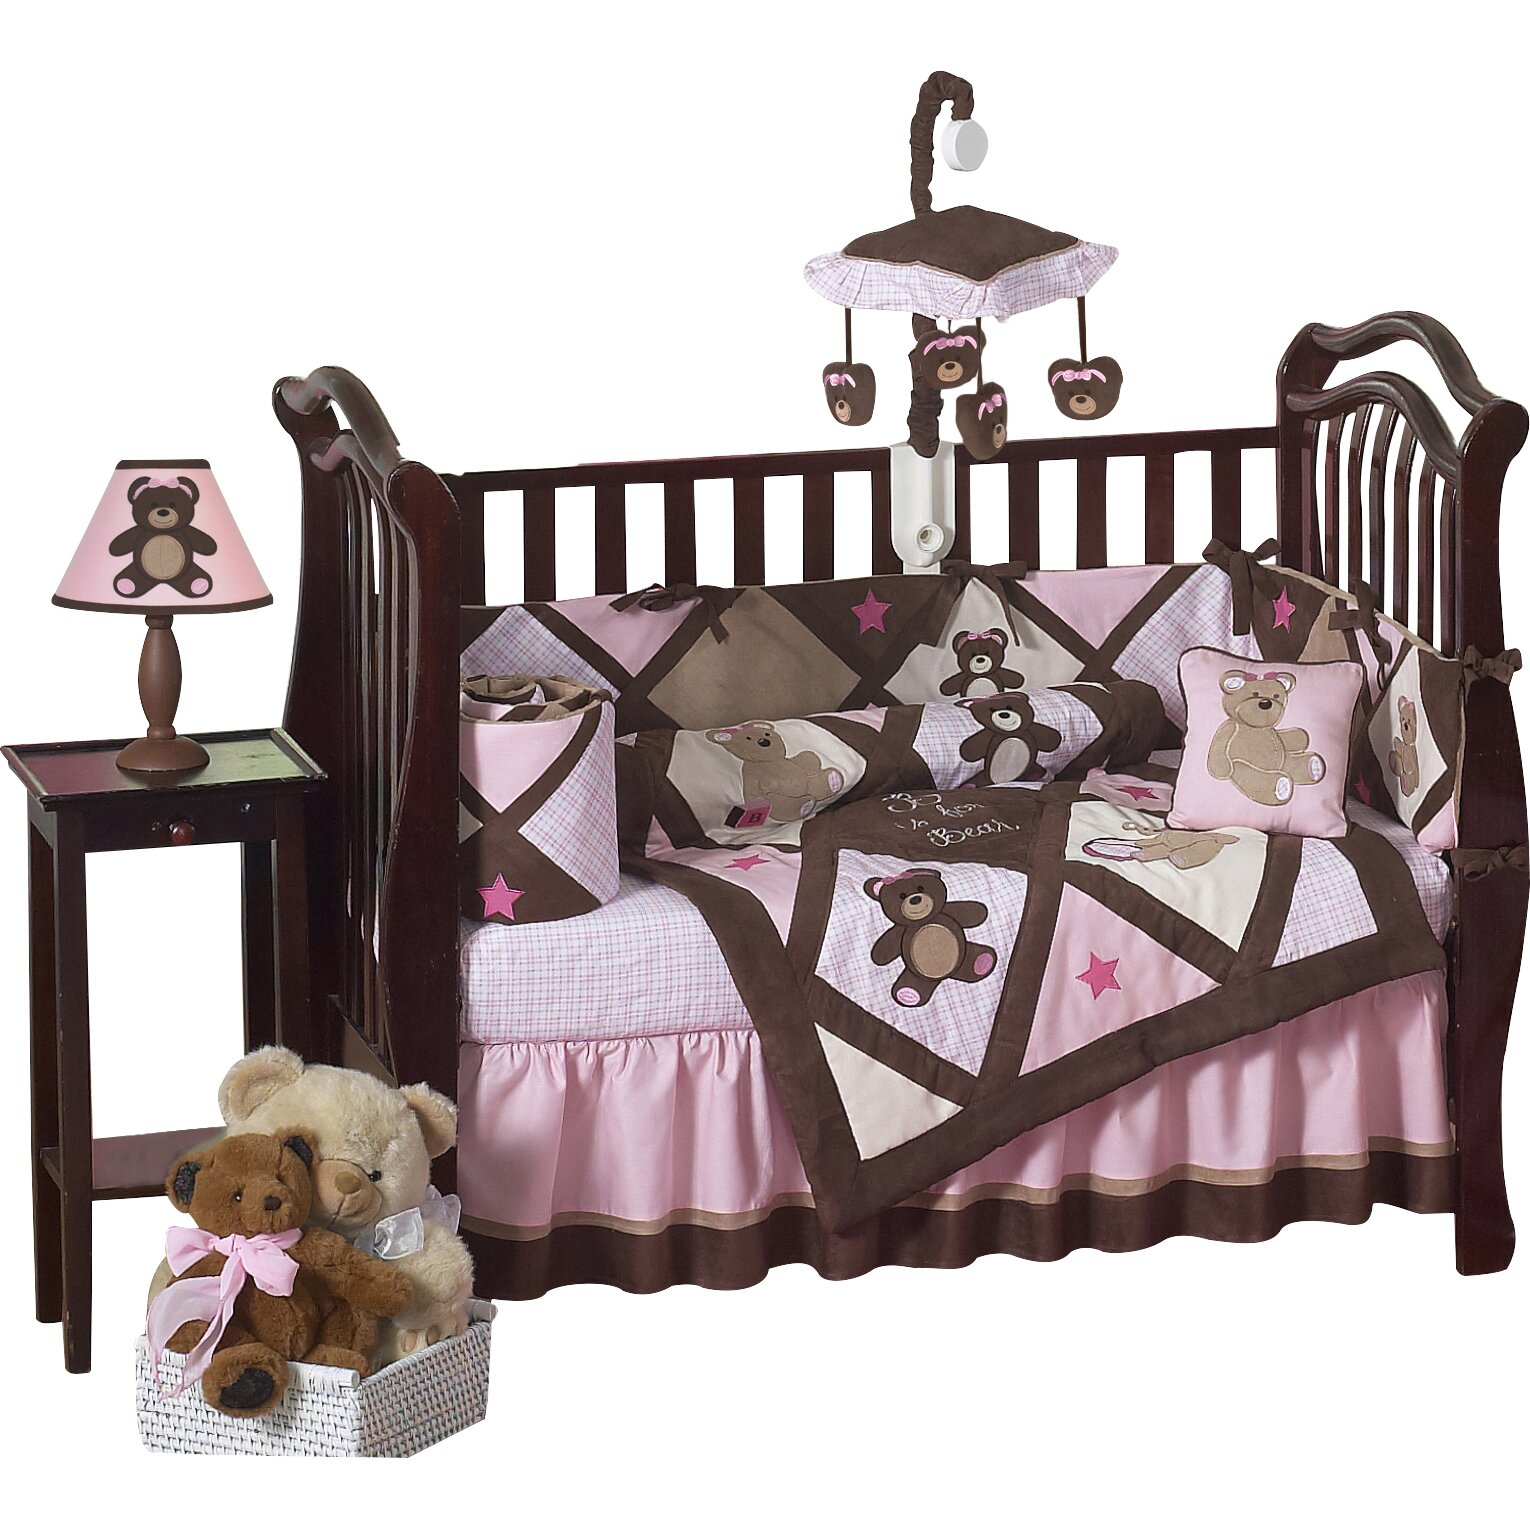 room cribs of pics s this reagan is beautiful the for jungle jeseniacoant new crib set designs bedding jojo sweet baby